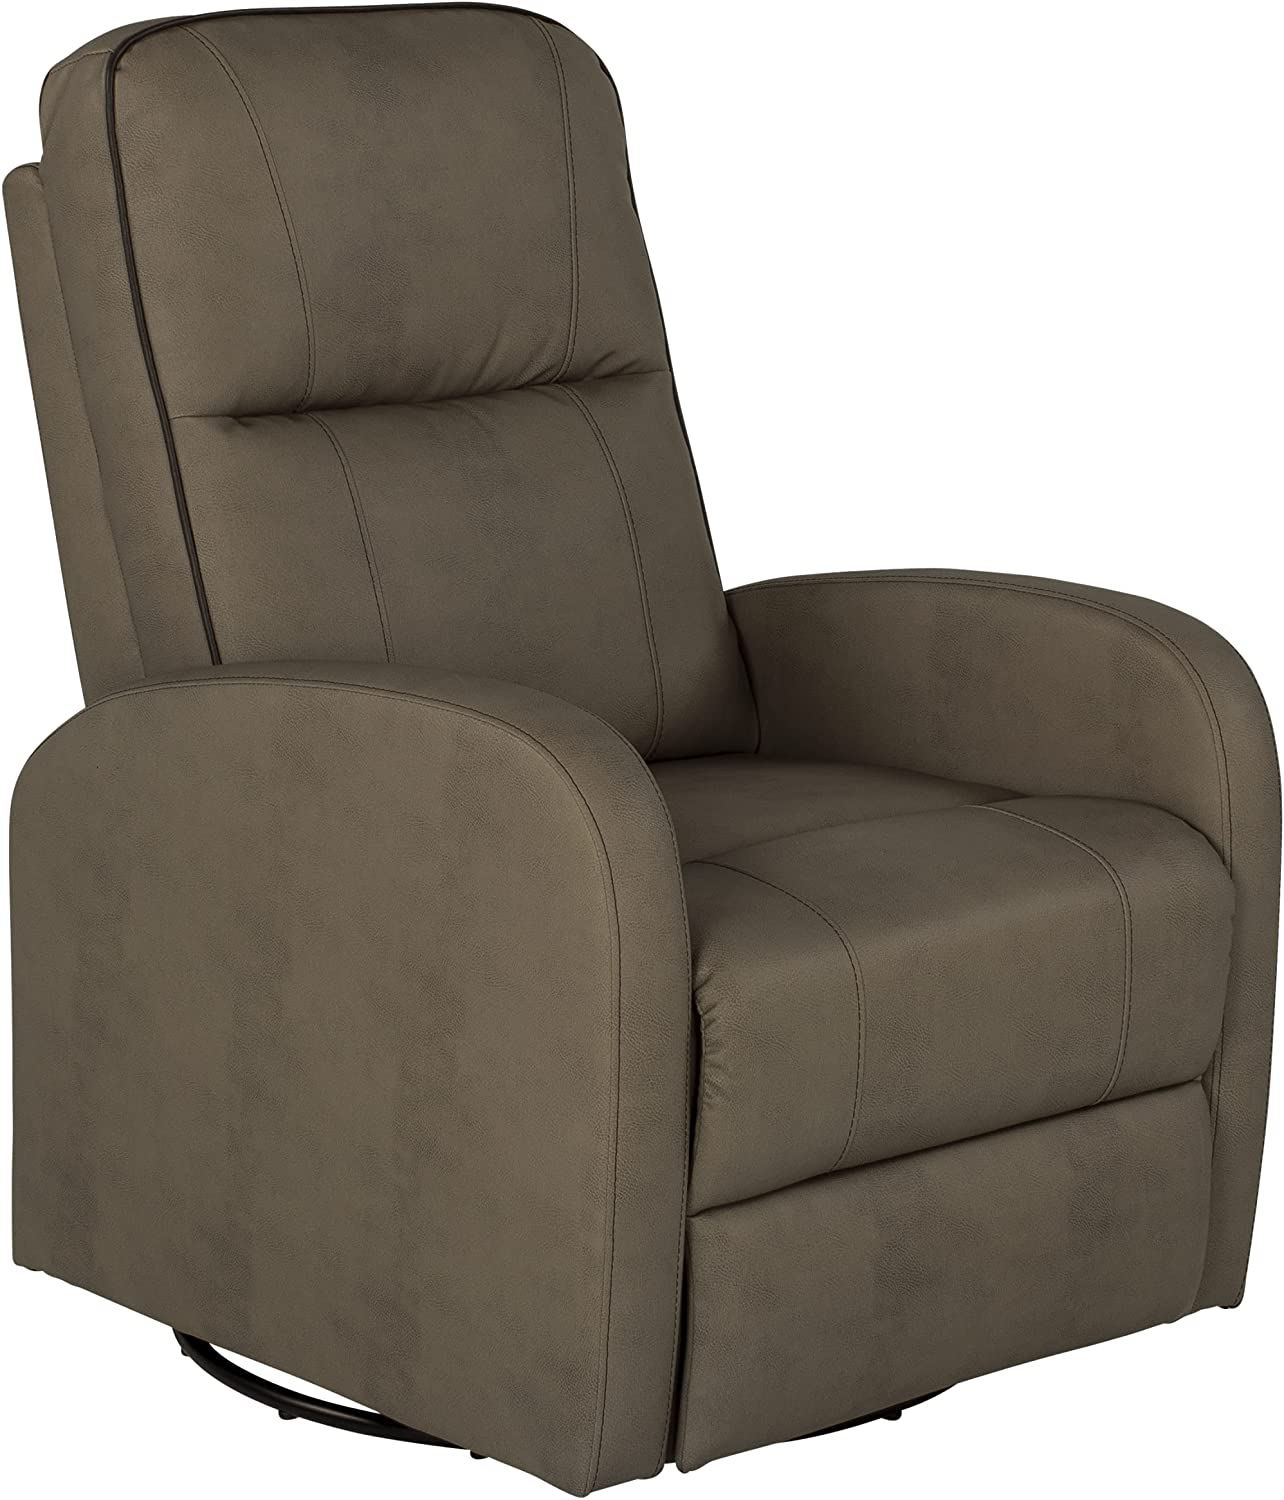 THOMAS PAYNE Swivel Pushback Recliner for 5th Wheel RVs, Travel Trailers and Motorhomes, Grummond